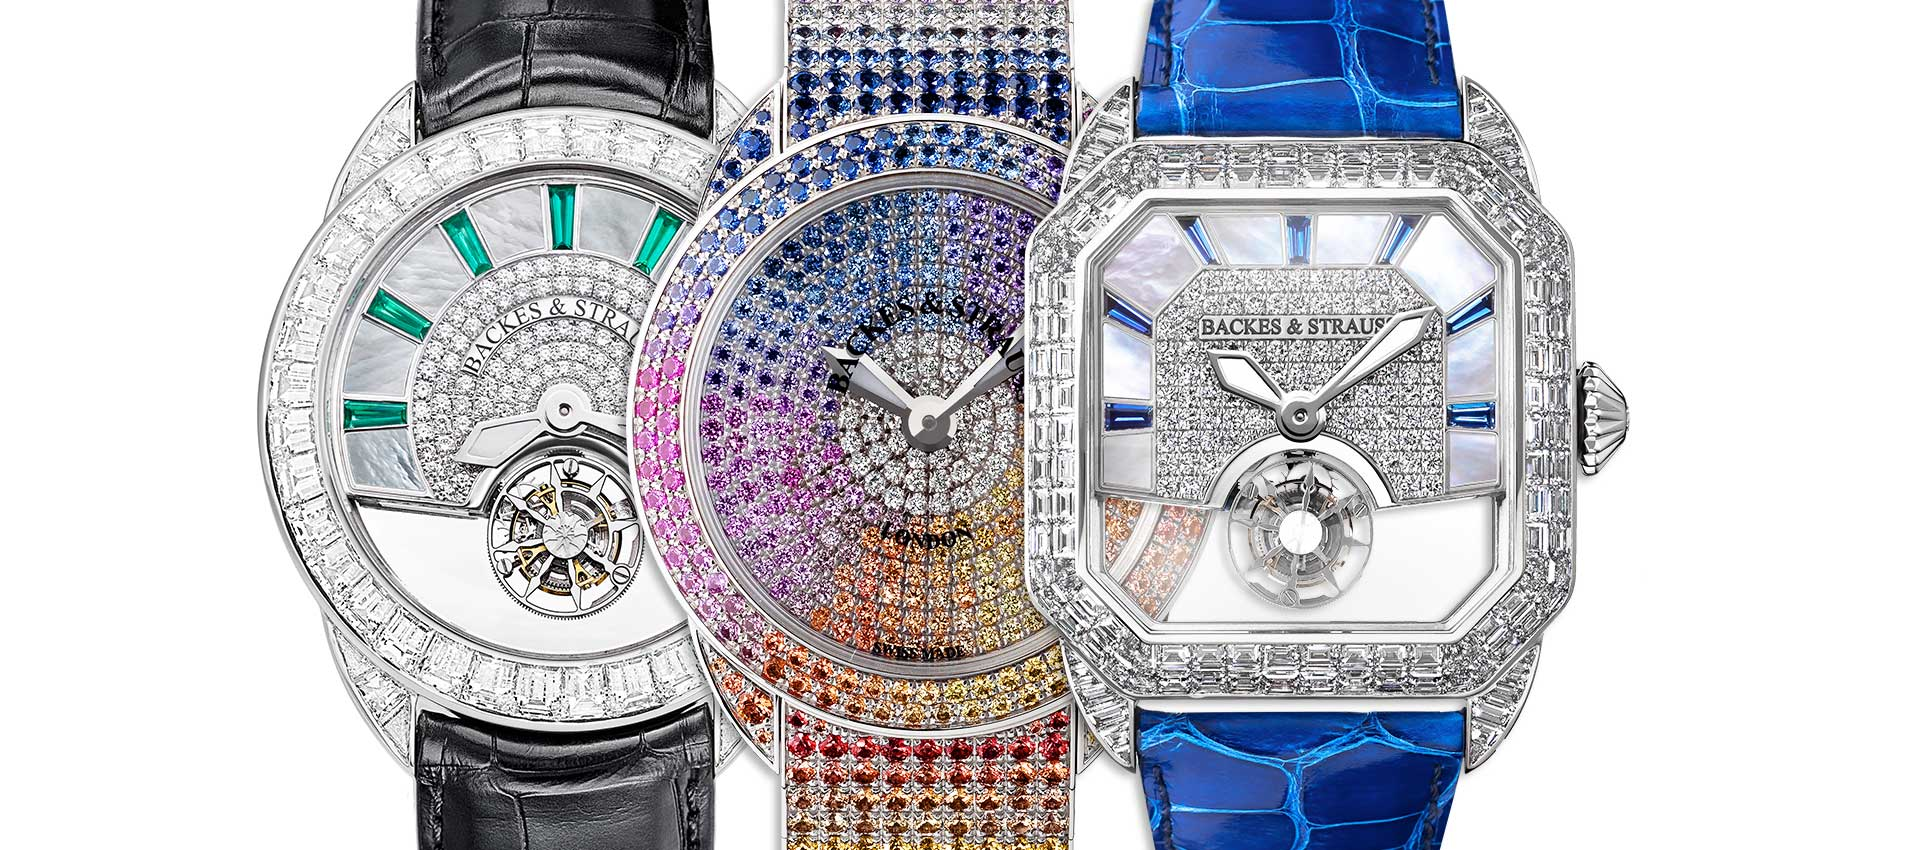 Royal collection iconic timepieces